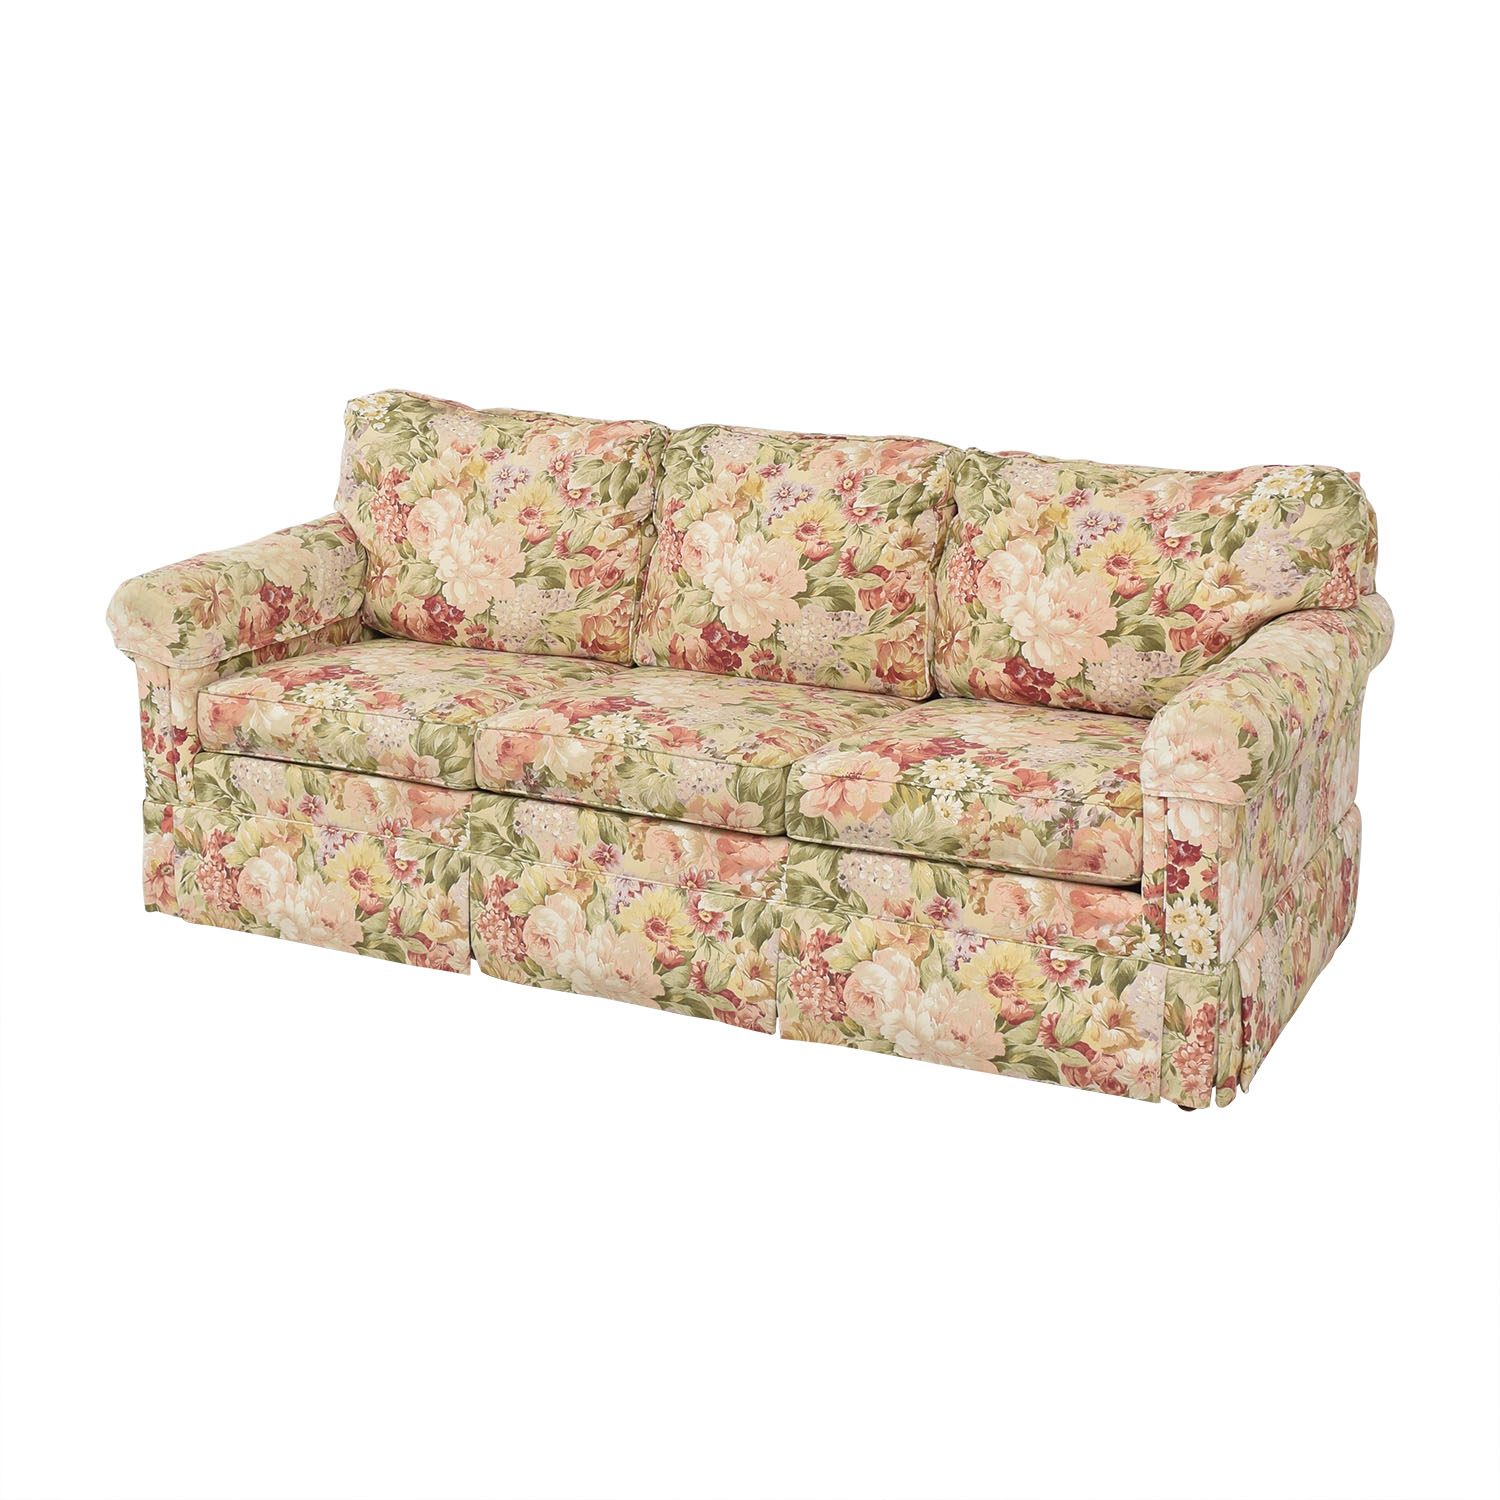 Enjoyable 65 Off Ethan Allen Ethan Allen Floral Slipcovered Sofa Sofas Pabps2019 Chair Design Images Pabps2019Com